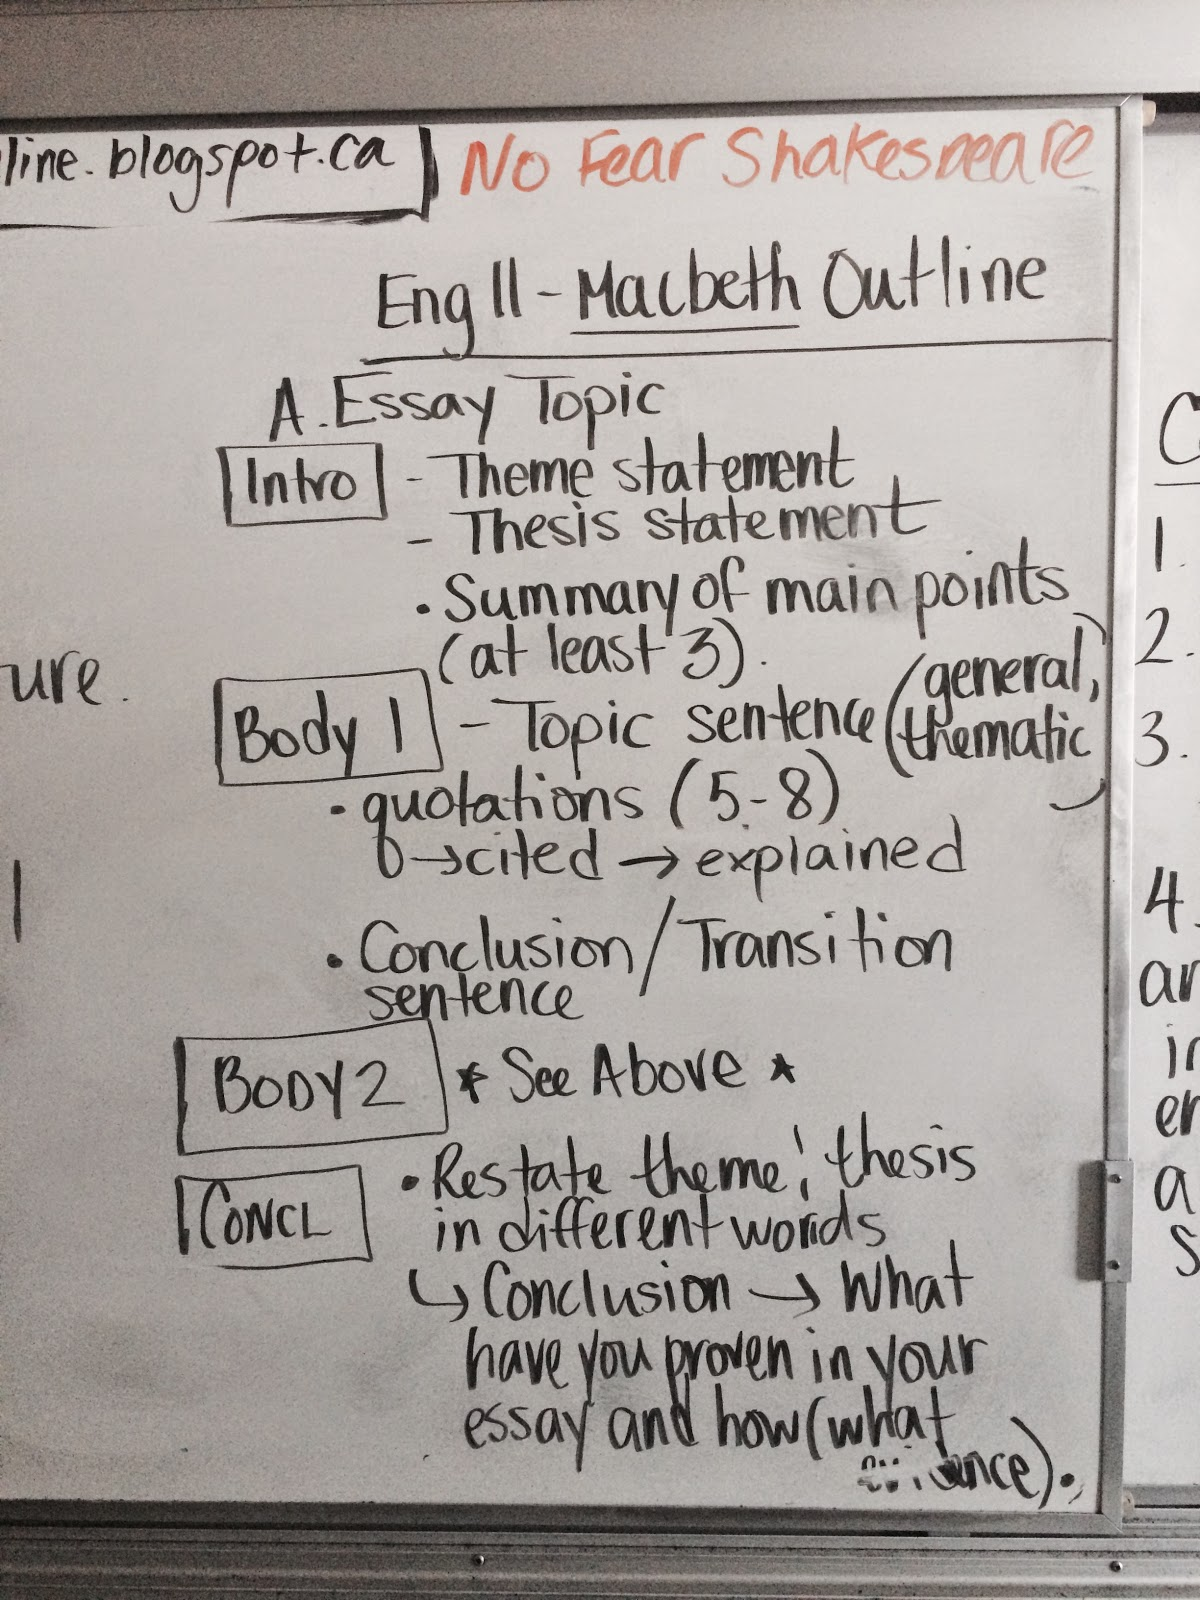 macpherson online 2015 english 10 romeo juliet 1 act v sc i iii 2 answer questions due monday 3 monday romeo and juliet test multiple choice